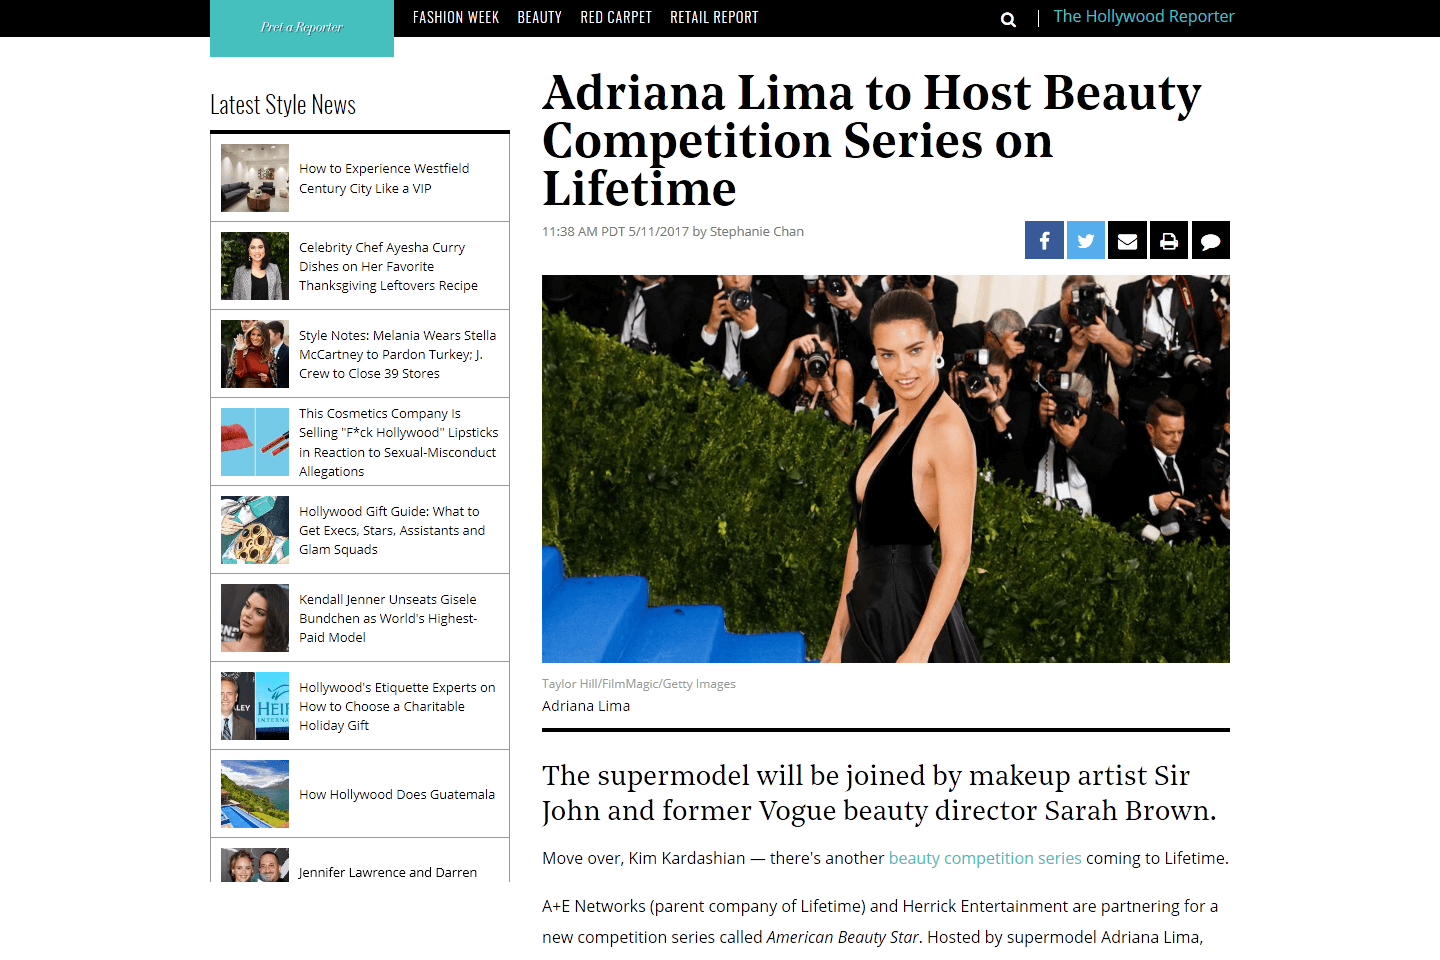 Adriana Lima Has A New TV Series